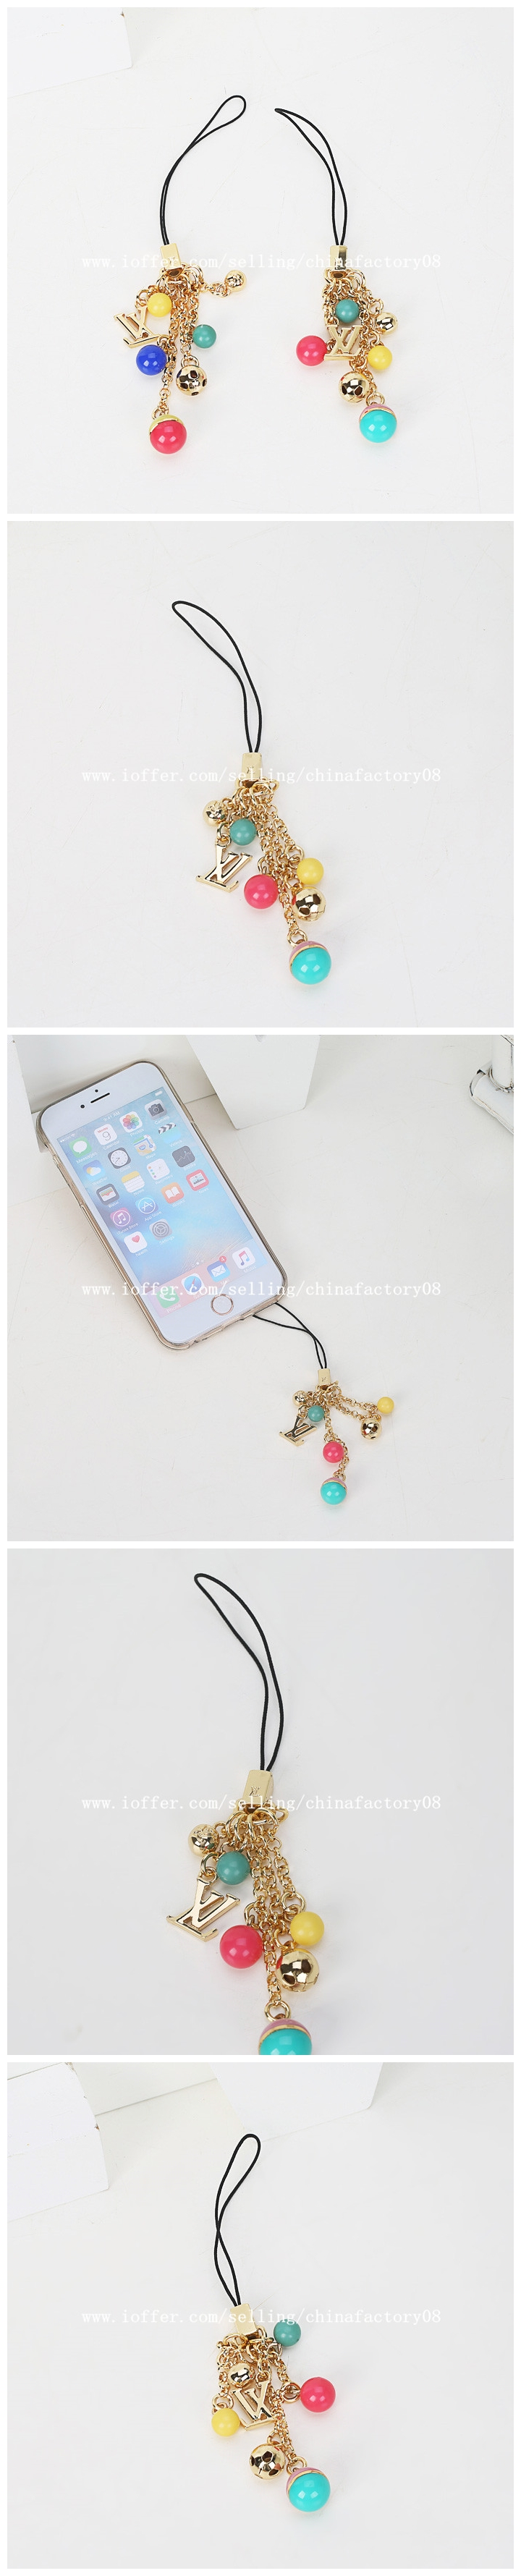 M62228-2 CELL PHONE ORNAMENTS DROP ACCESSORIES CHARM for sale